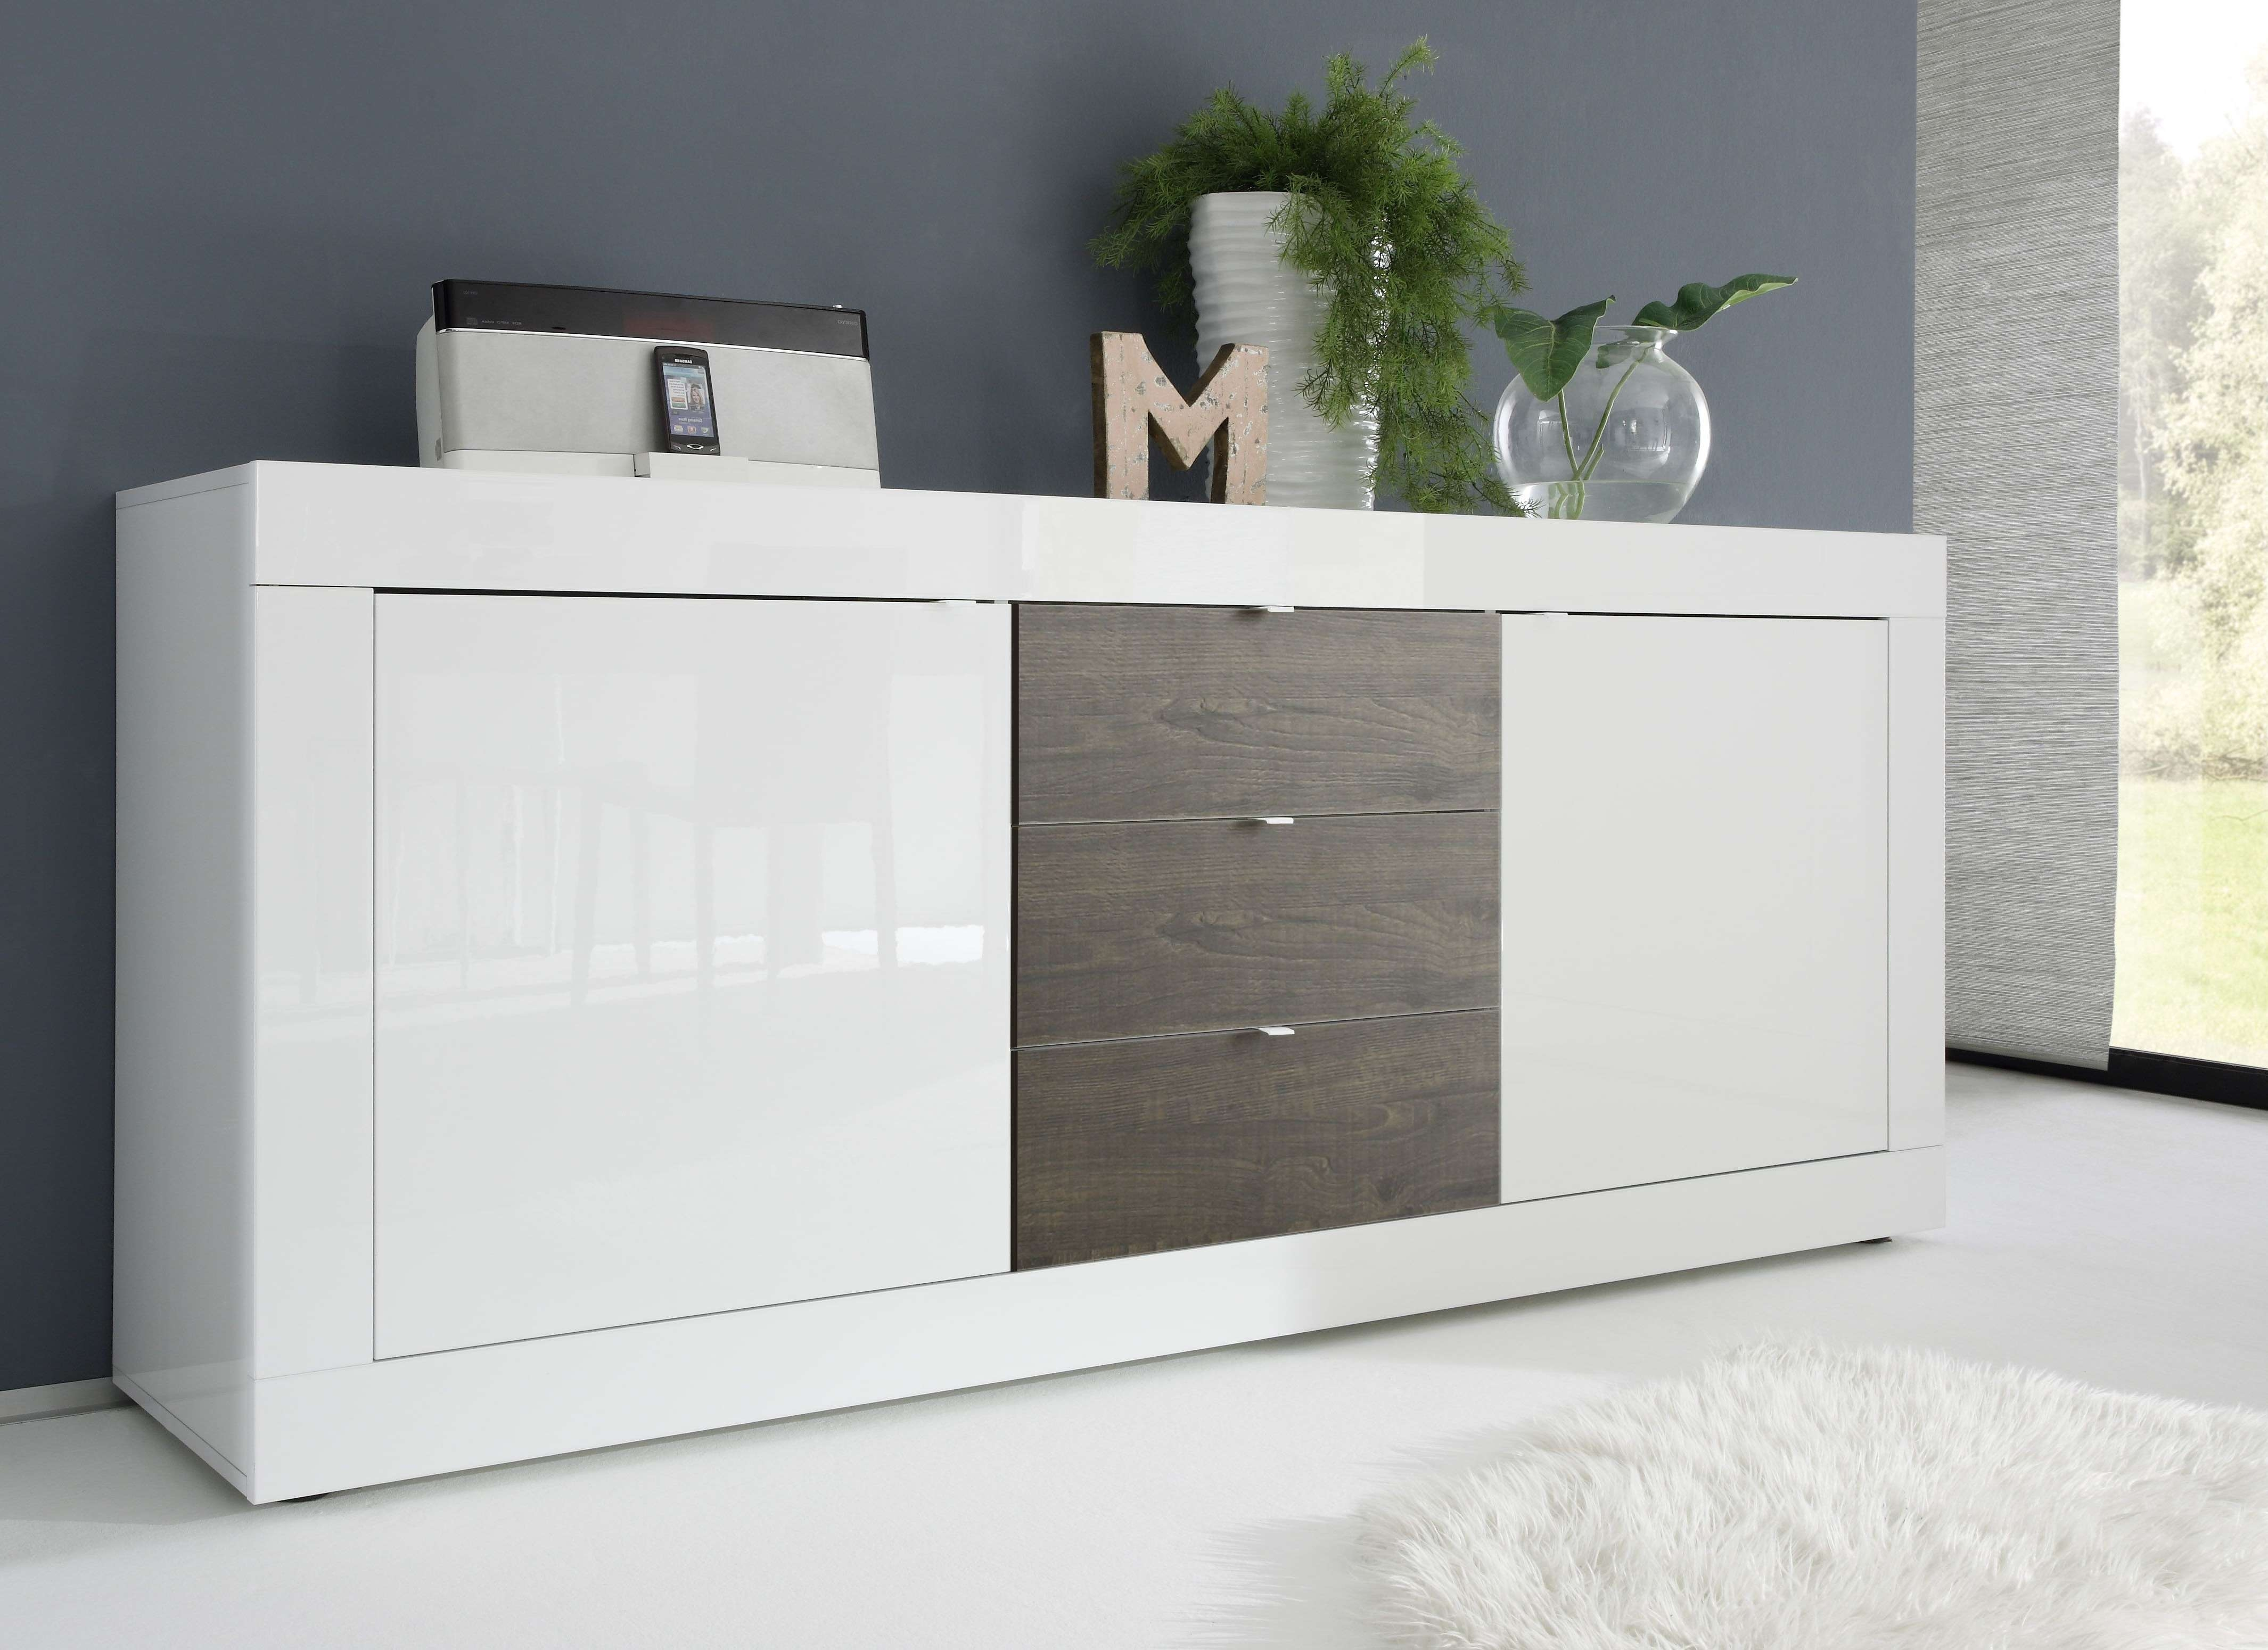 Dolcevita Ii White Gloss Sideboard – Sideboards – Sena Home Furniture In High White Gloss Sideboards (View 12 of 20)